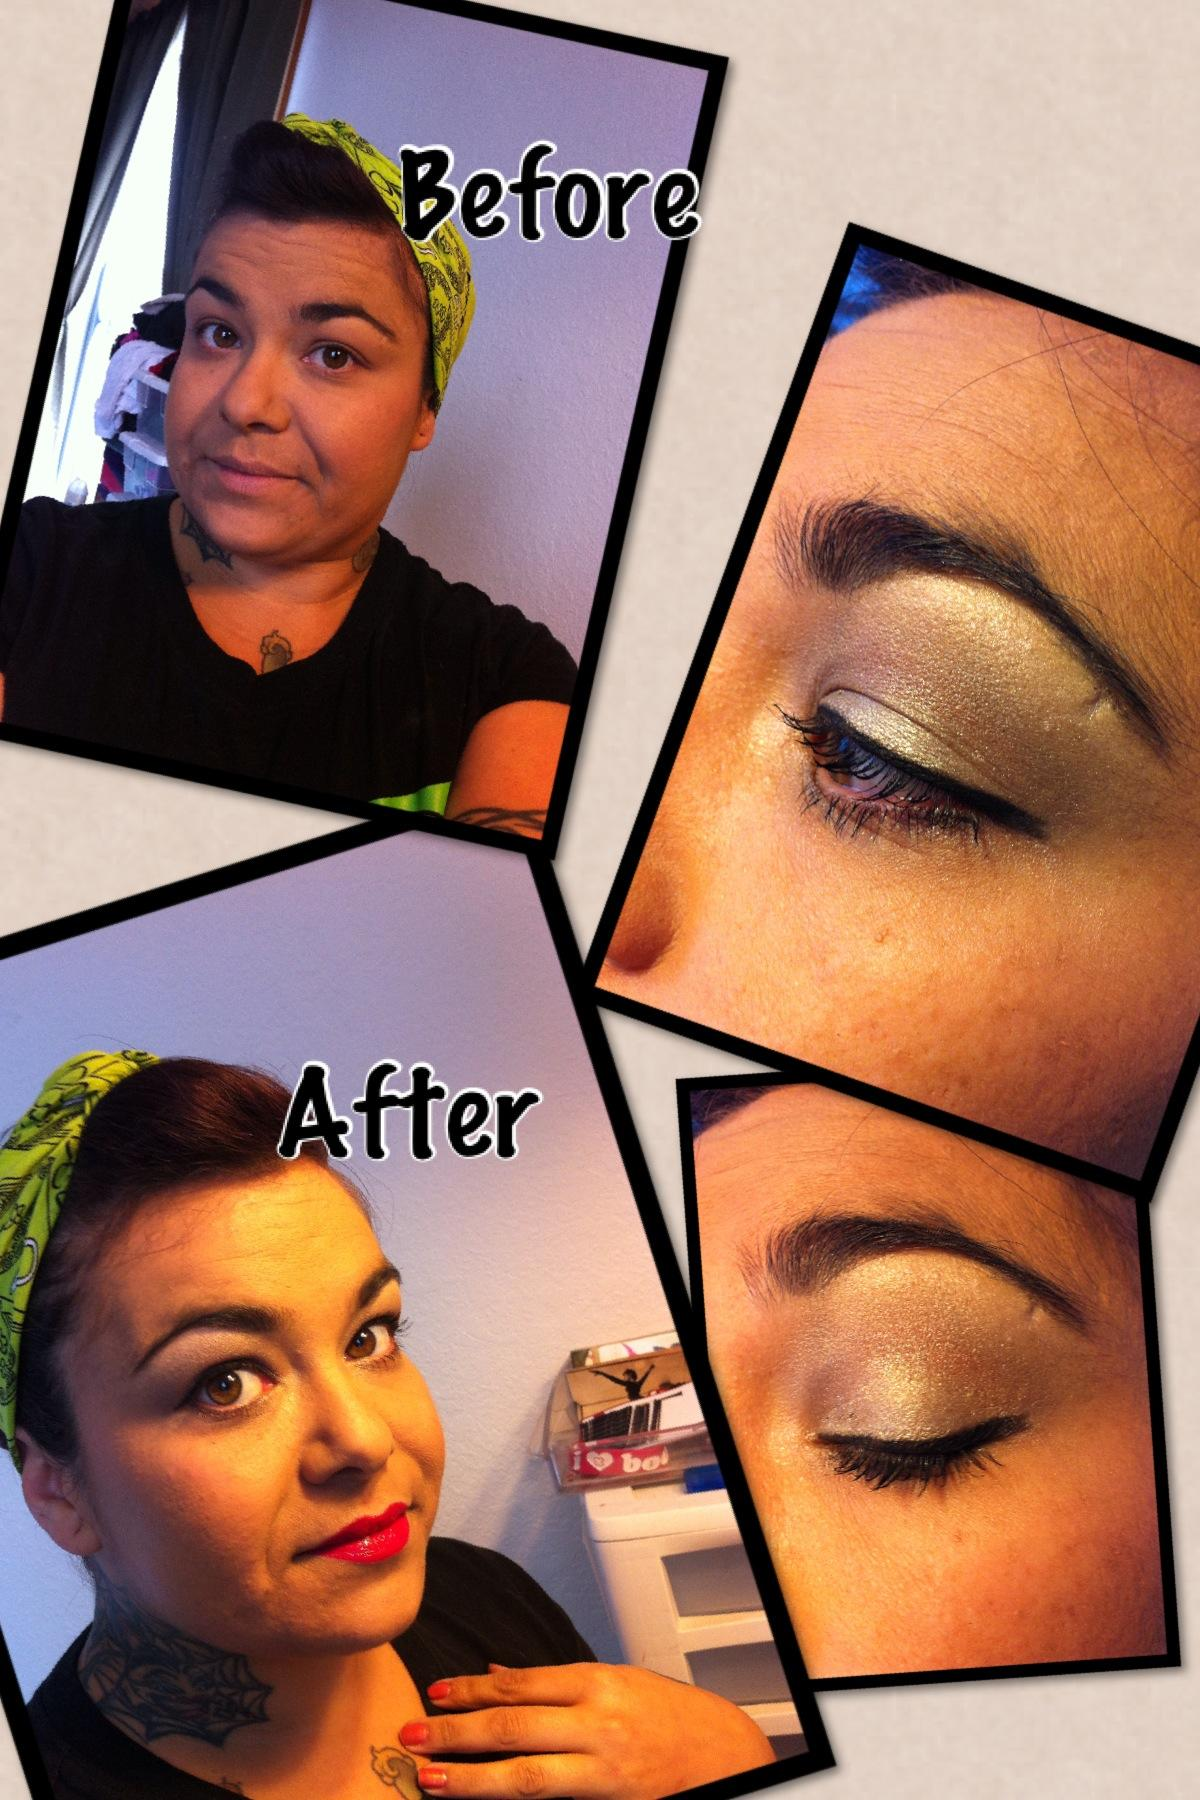 Daytime look before and after - image 1 - student project